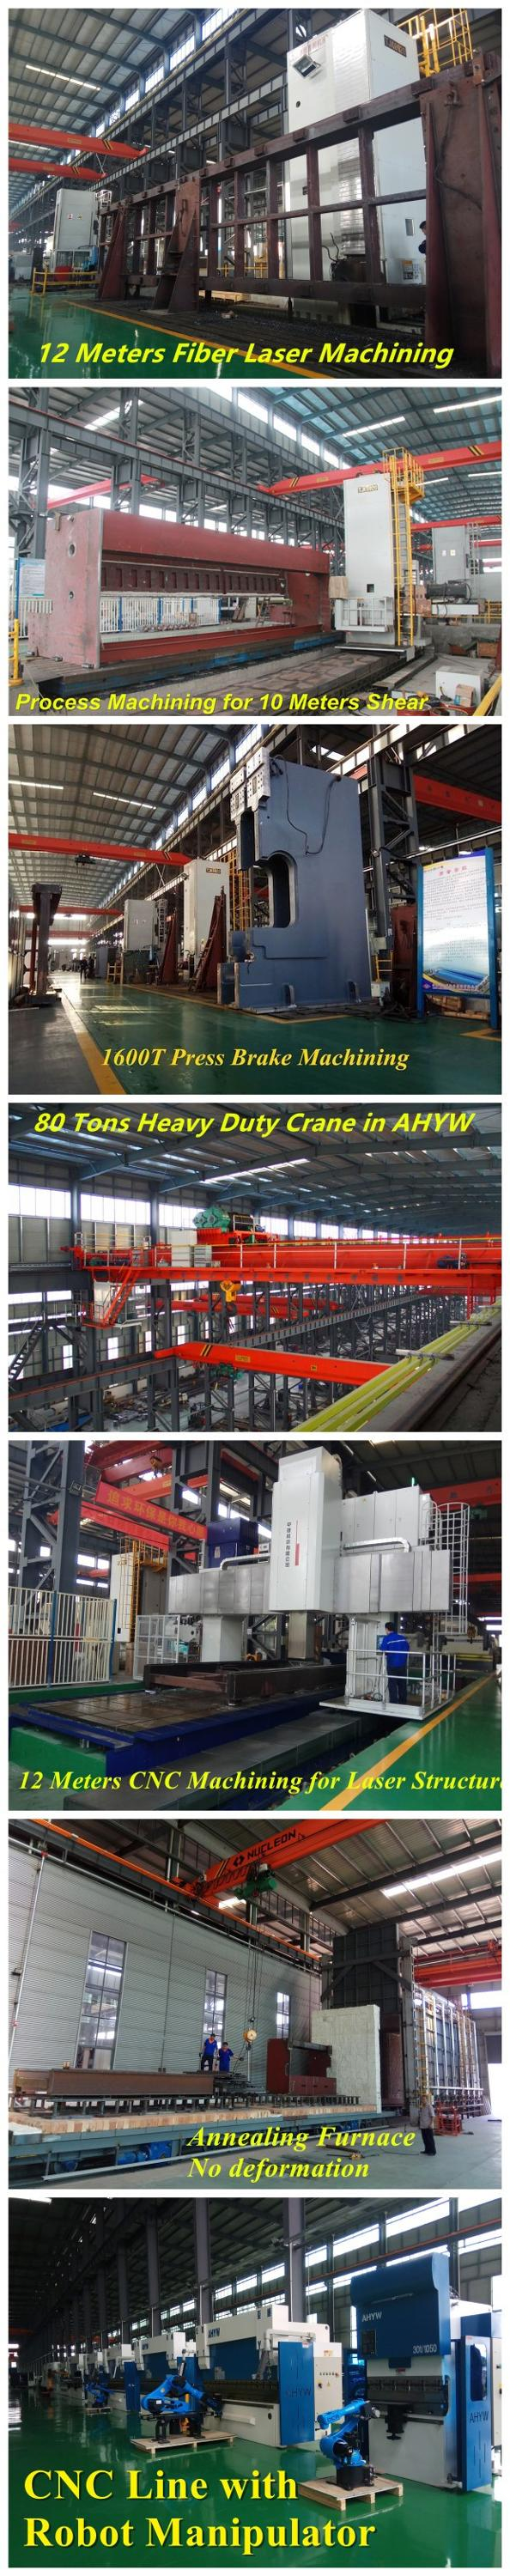 CNC Constructure Steel Hydraulic Bending PPEB Series 100/30